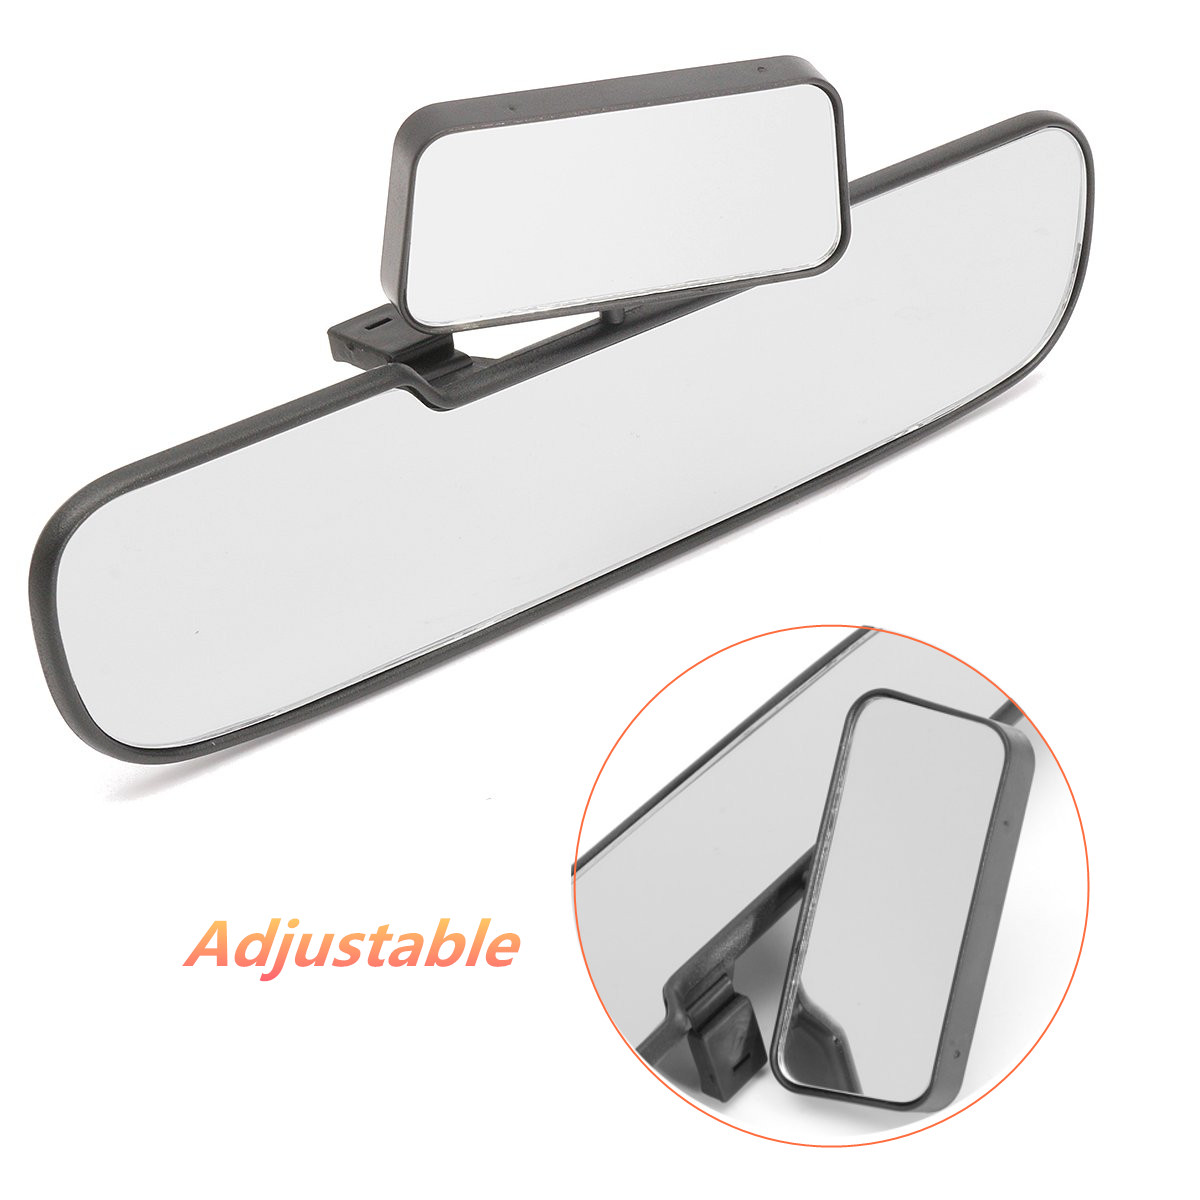 Universal Car Rear View Mirror Wide Angle Panoramic Anti-dazzling Interior Rearview Mirror Large Vision Curved Double Mirror